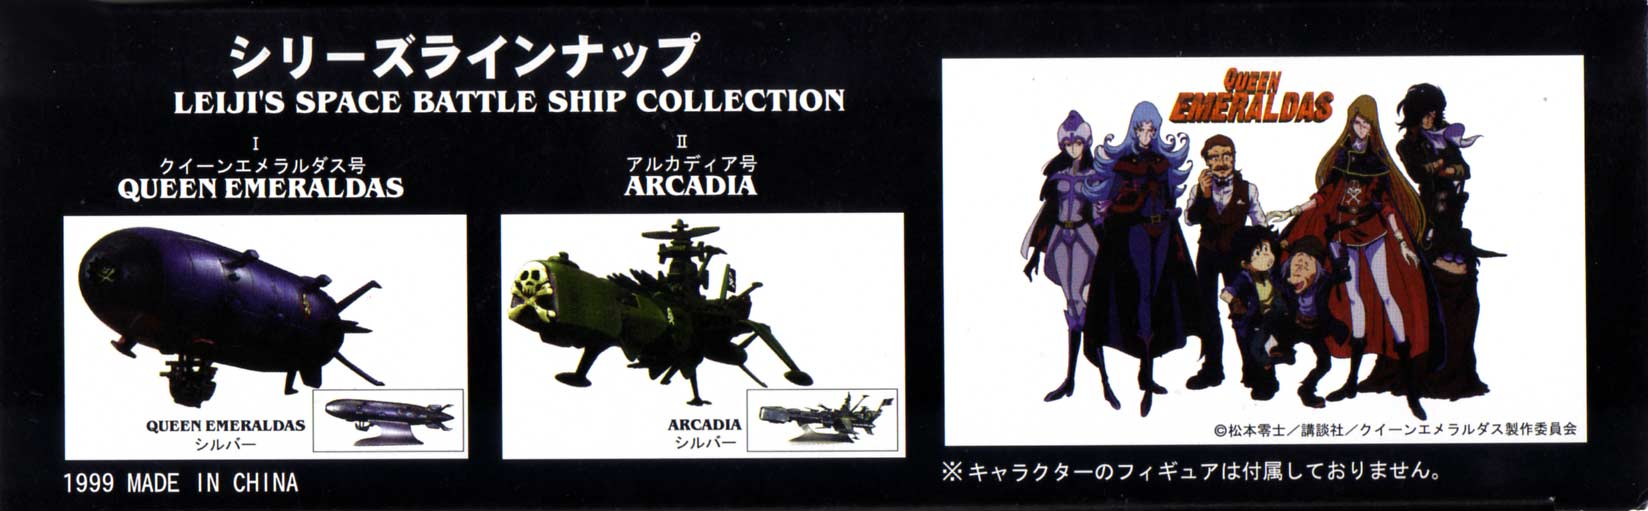 Packaging (gauche) de l'Arcadia de Mabell de la collection Leiji's Space ship